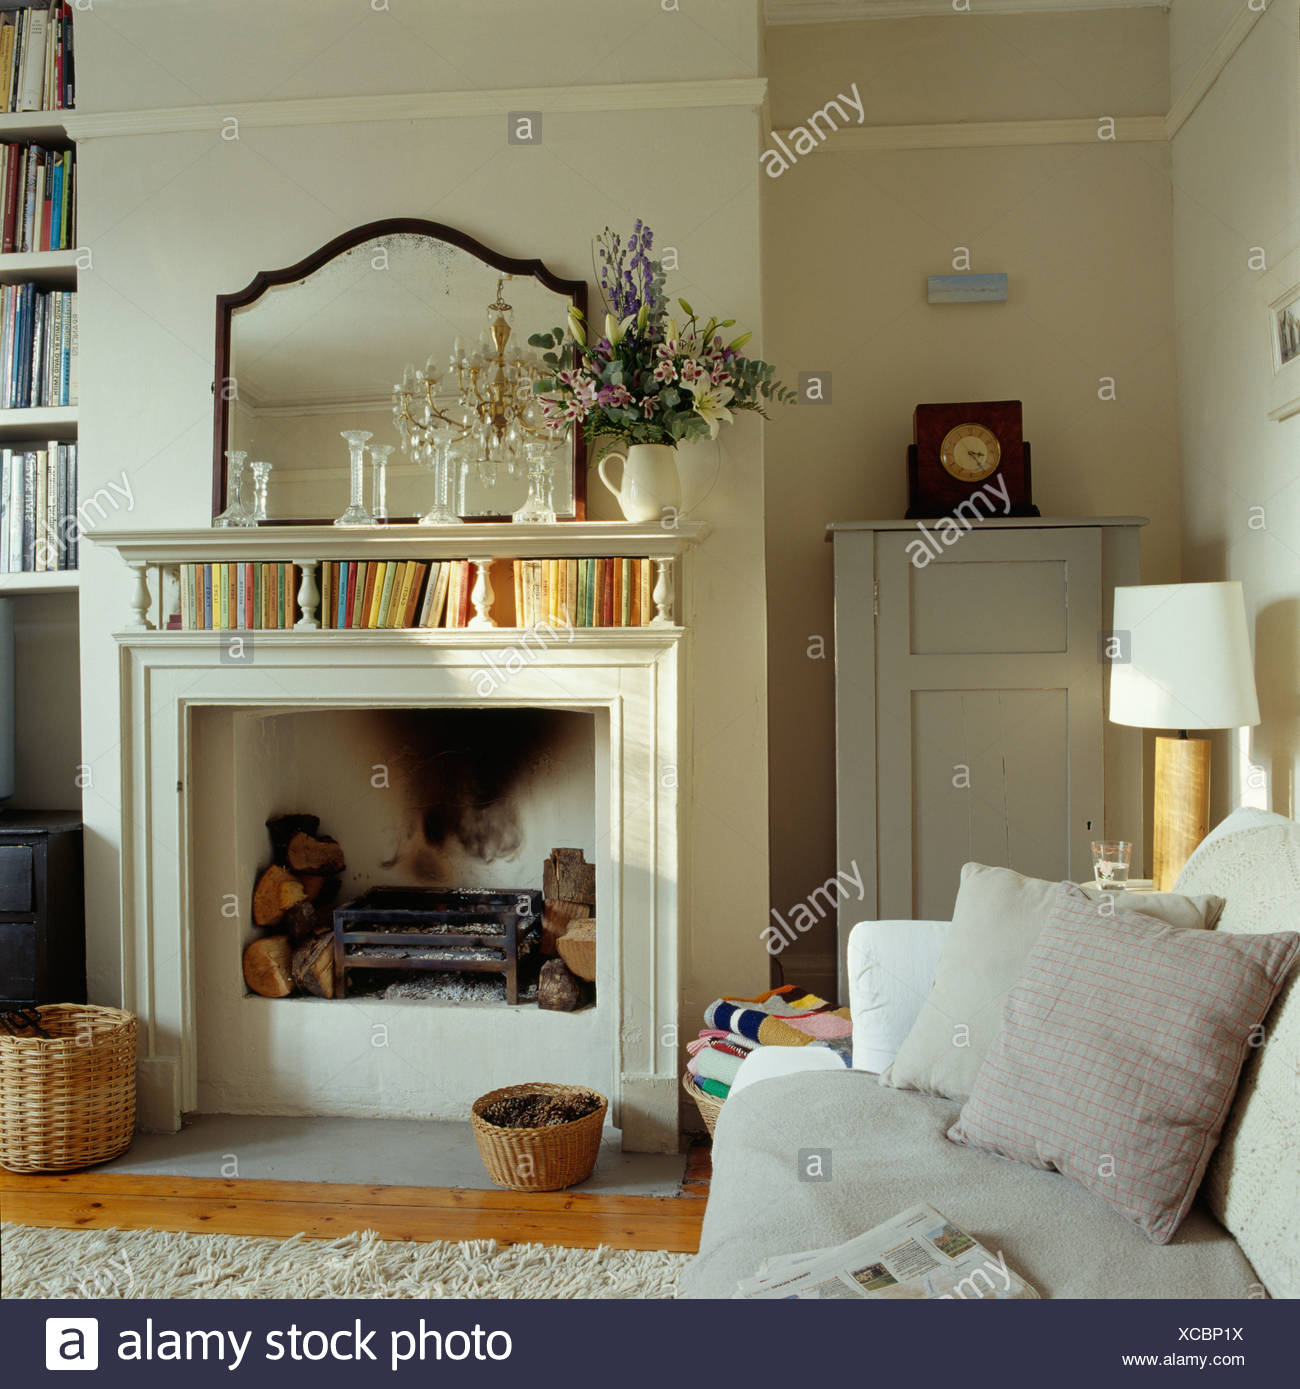 Antique Mirror Above Cream Fireplace In Cream Country Living Room With Painted Cupboard In Alcove Stock Photo Alamy